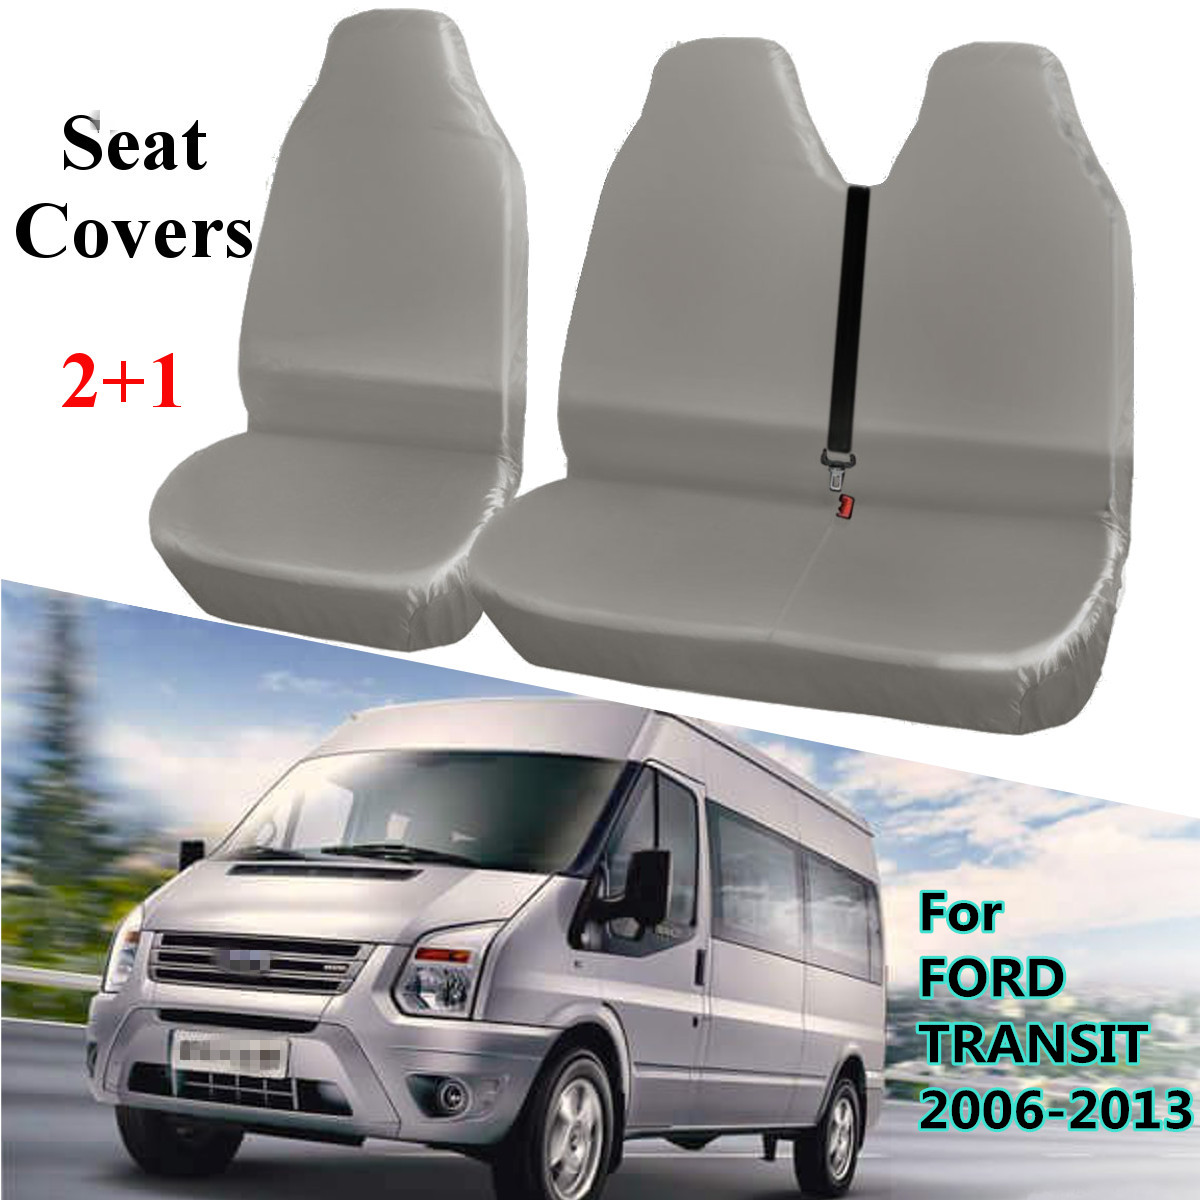 2+1 Gray Universal Waterproof Van Automobiles Seat Covers Protector for FORD TRANSIT 2006-2013 газ qty 2 4578 взимается гуд лифт поддержка ford 1997 2006 годы